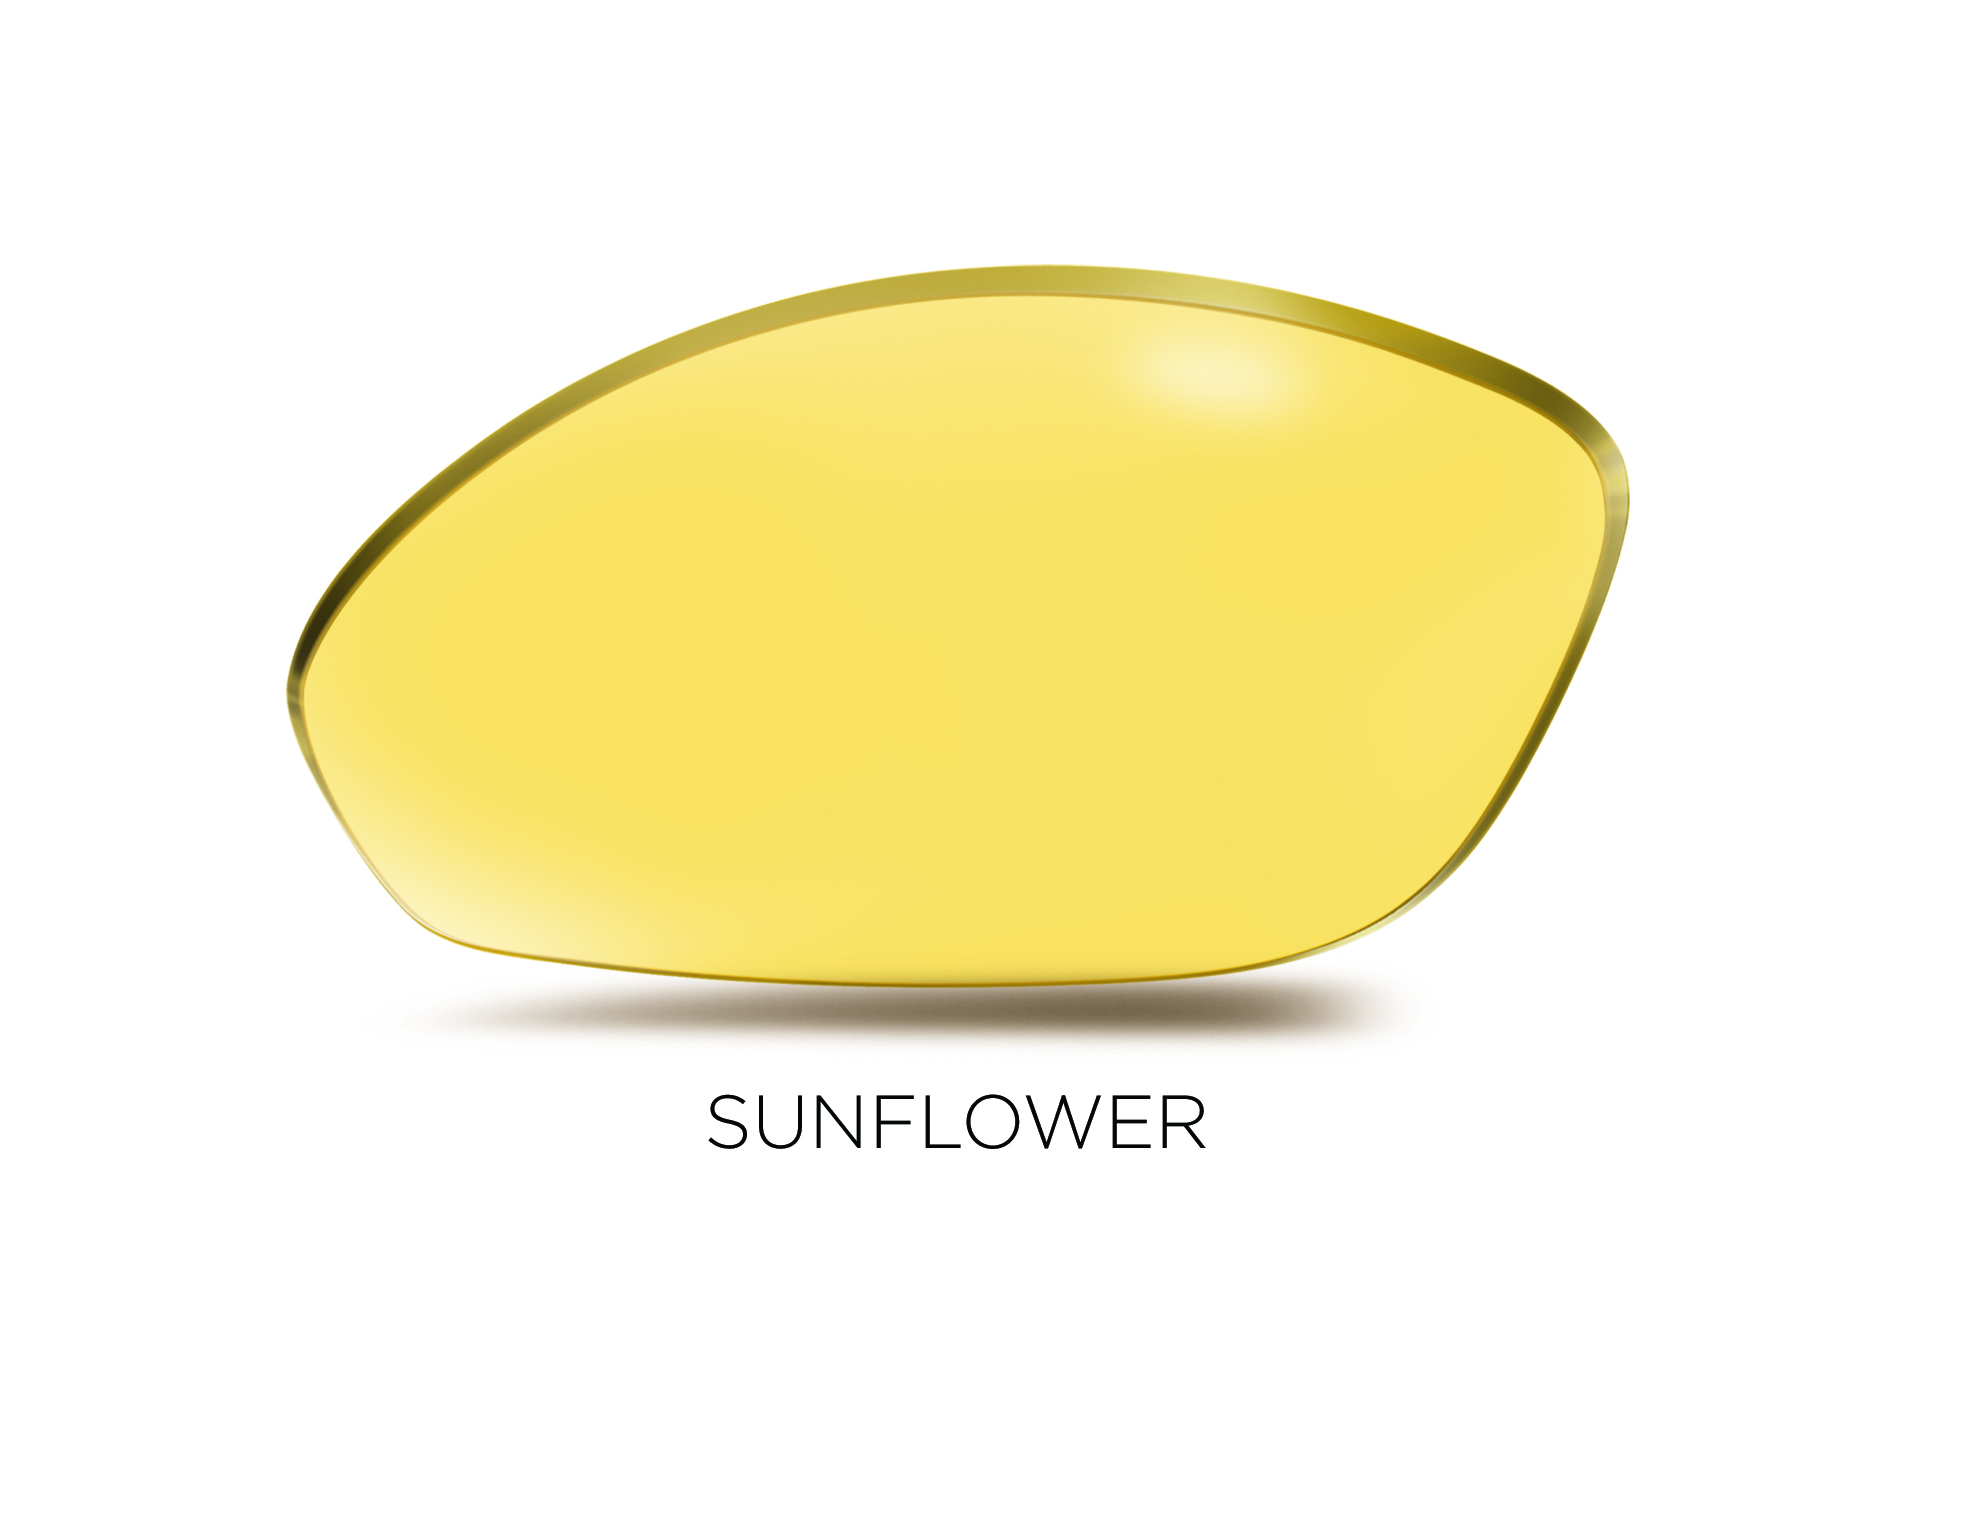 Sunflower_lens_PRINT